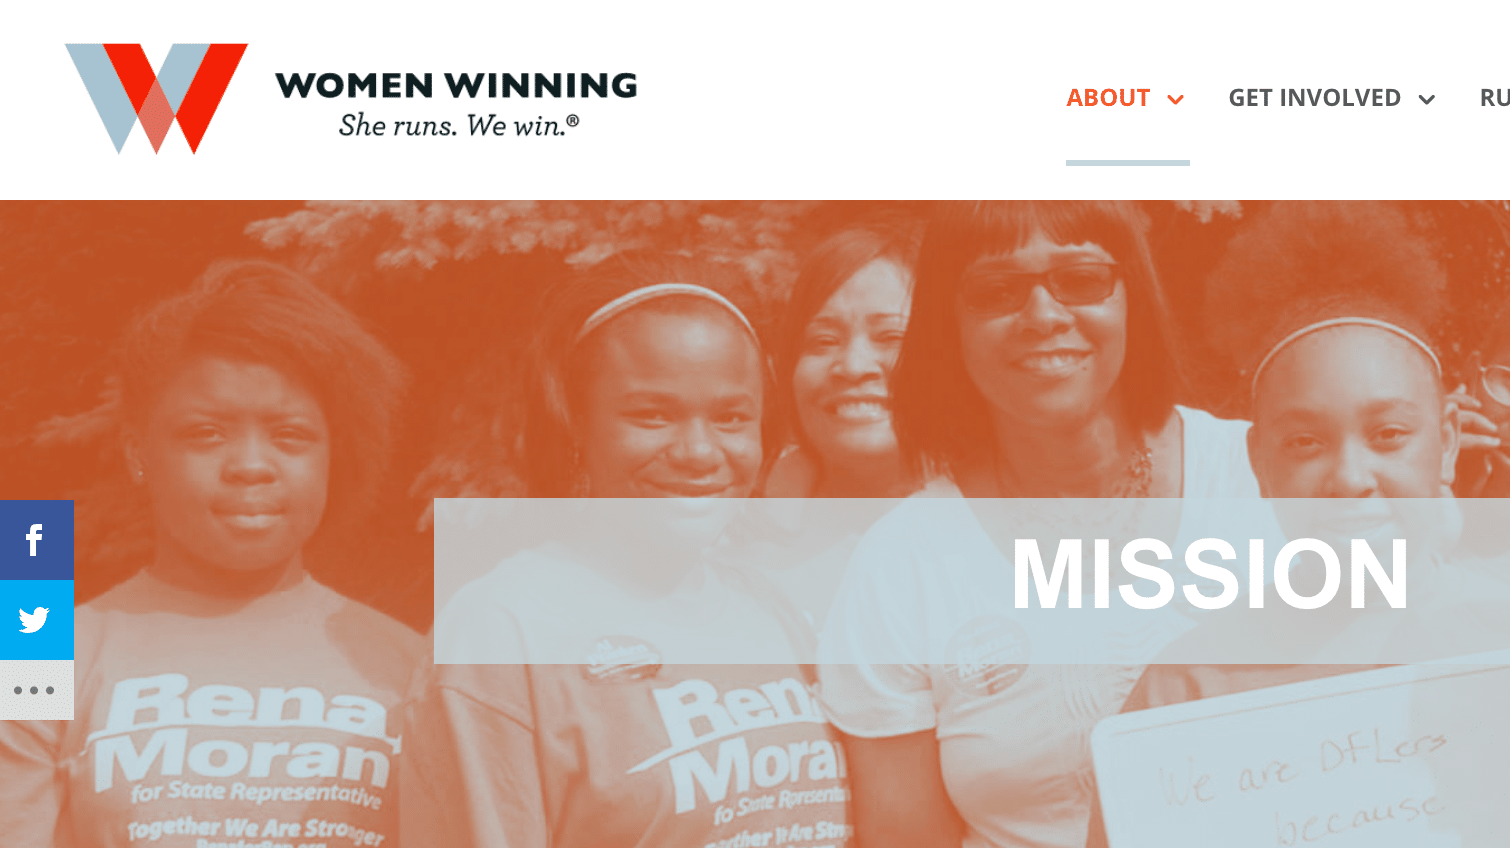 More than 80% of Women Winning-endorsed candidates win in 2019